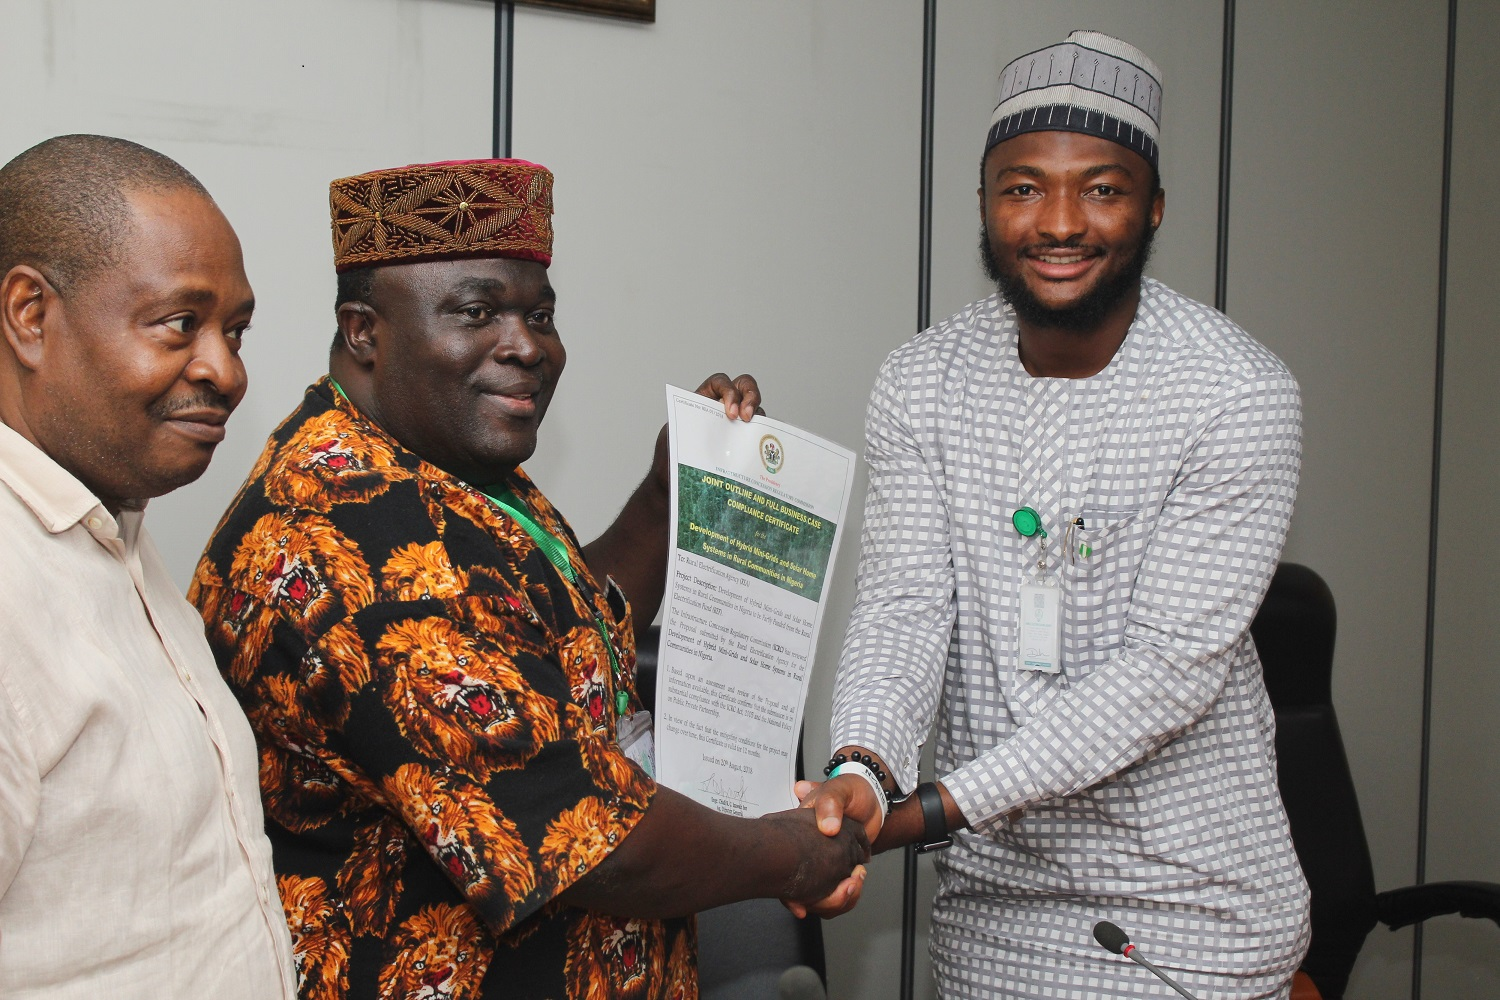 Rural Electrification Agency awarded a Certificate of Compliance in accordance with the ICRC Act, 2005 & the National Policy on PPP for the deployment of Mini-grids and SHS